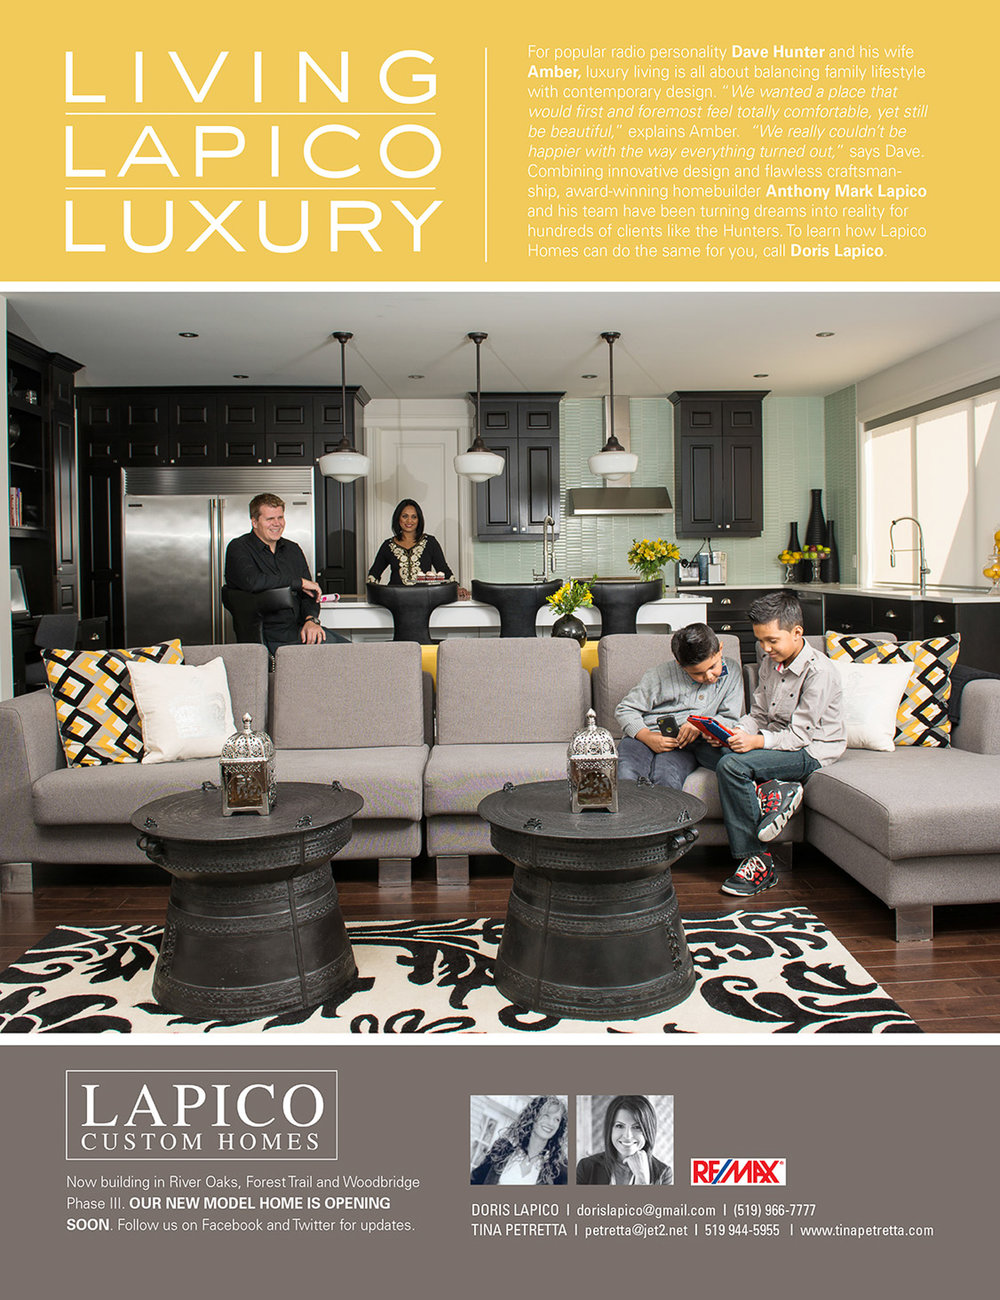 Lapico Custom Homes